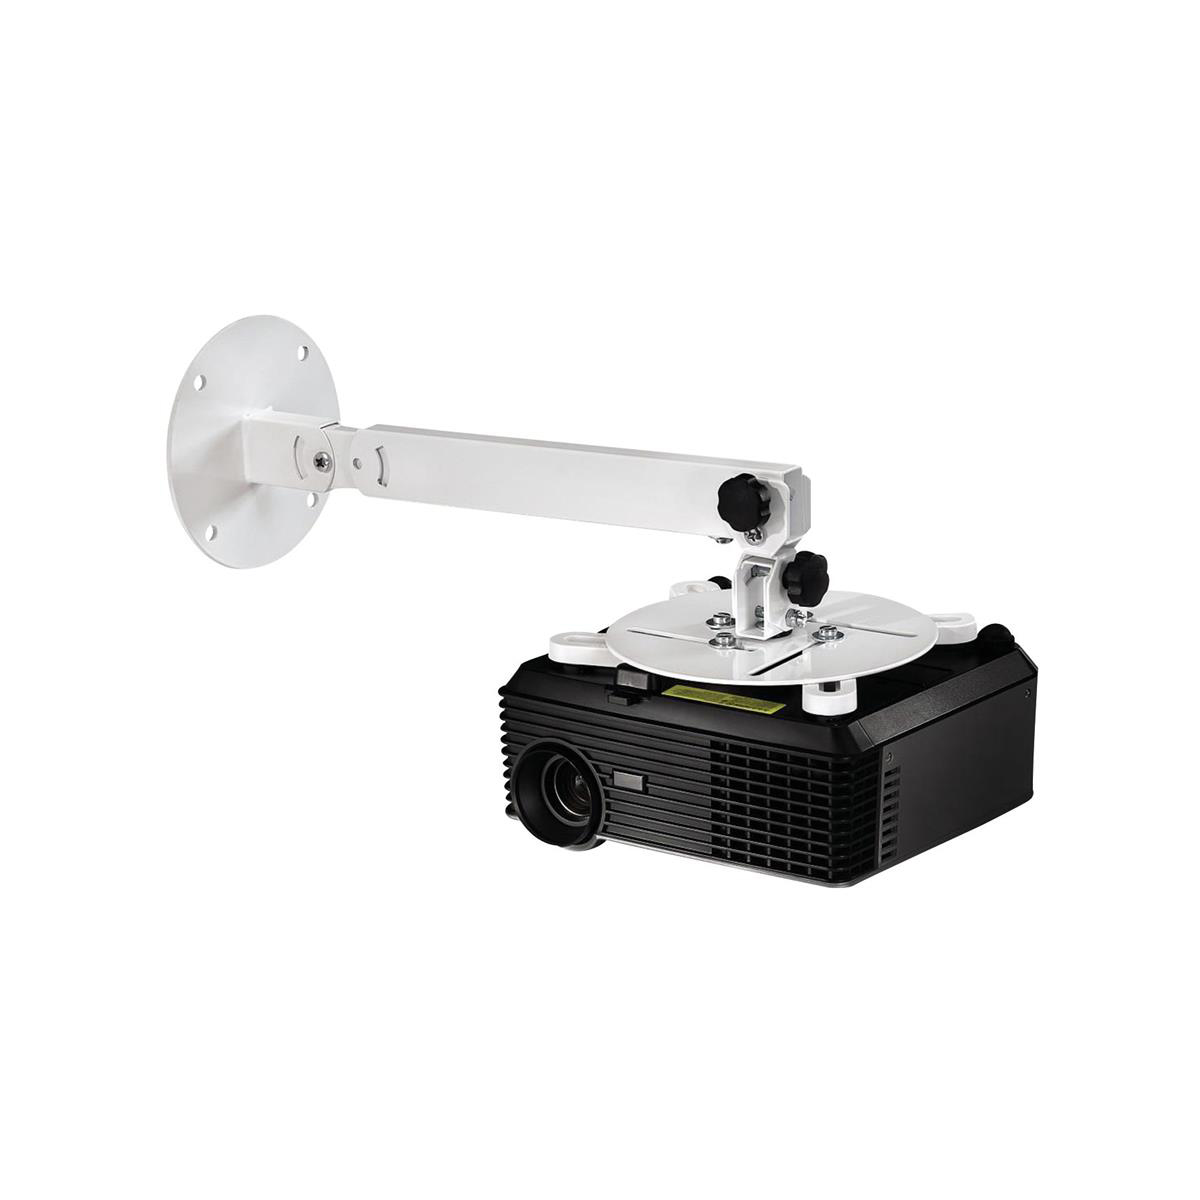 Hama Projector Mount for Wall/Ceiling 360 Rotation Max Load 15kg Ref 84422